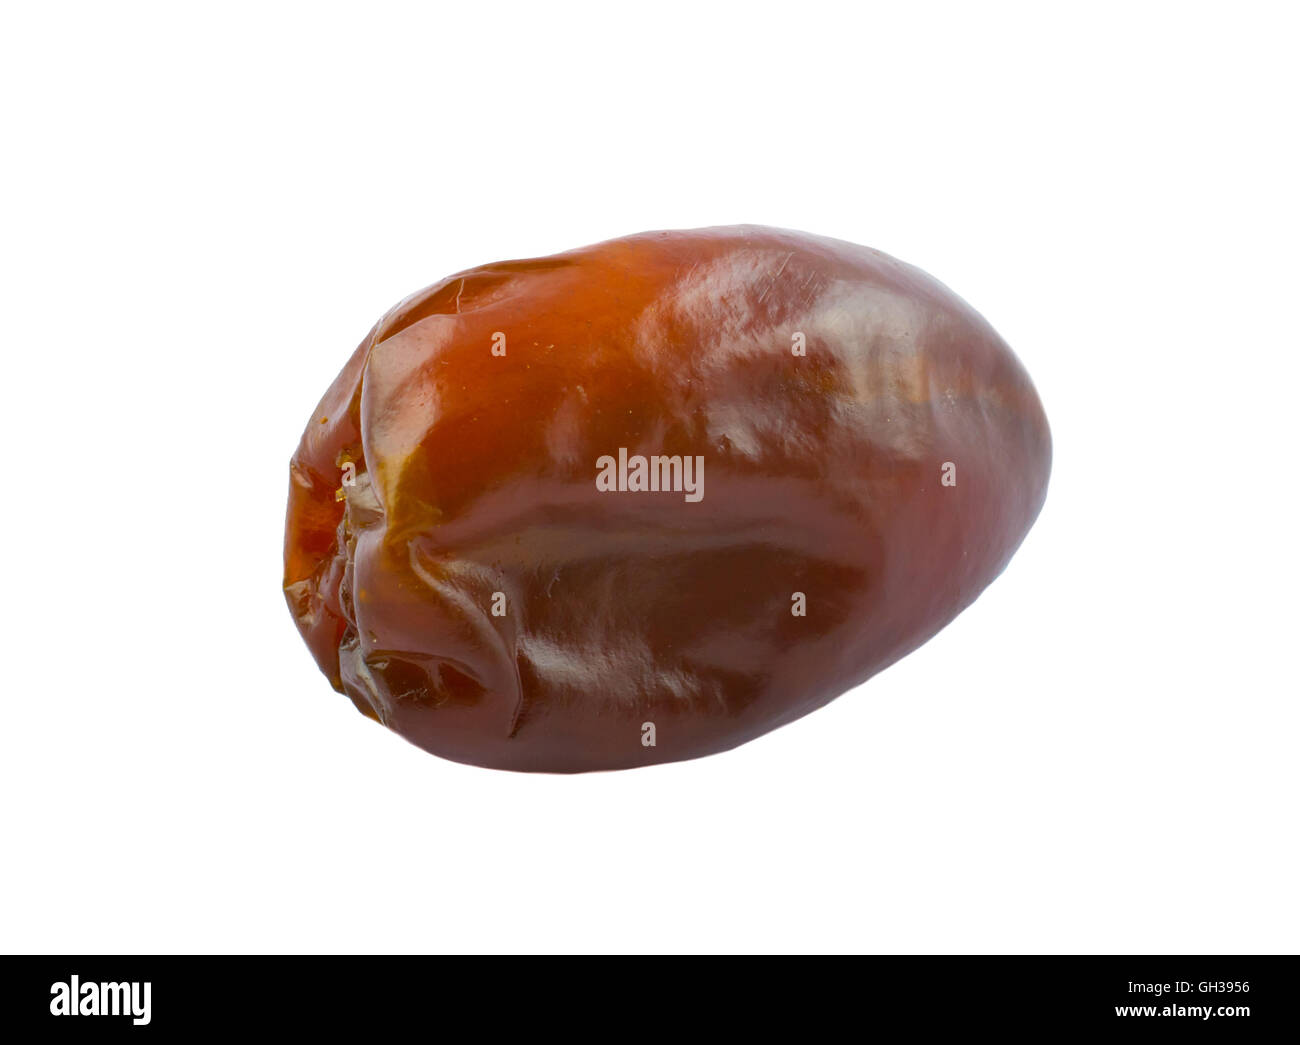 A golden brown date isolated on a white background - Stock Image